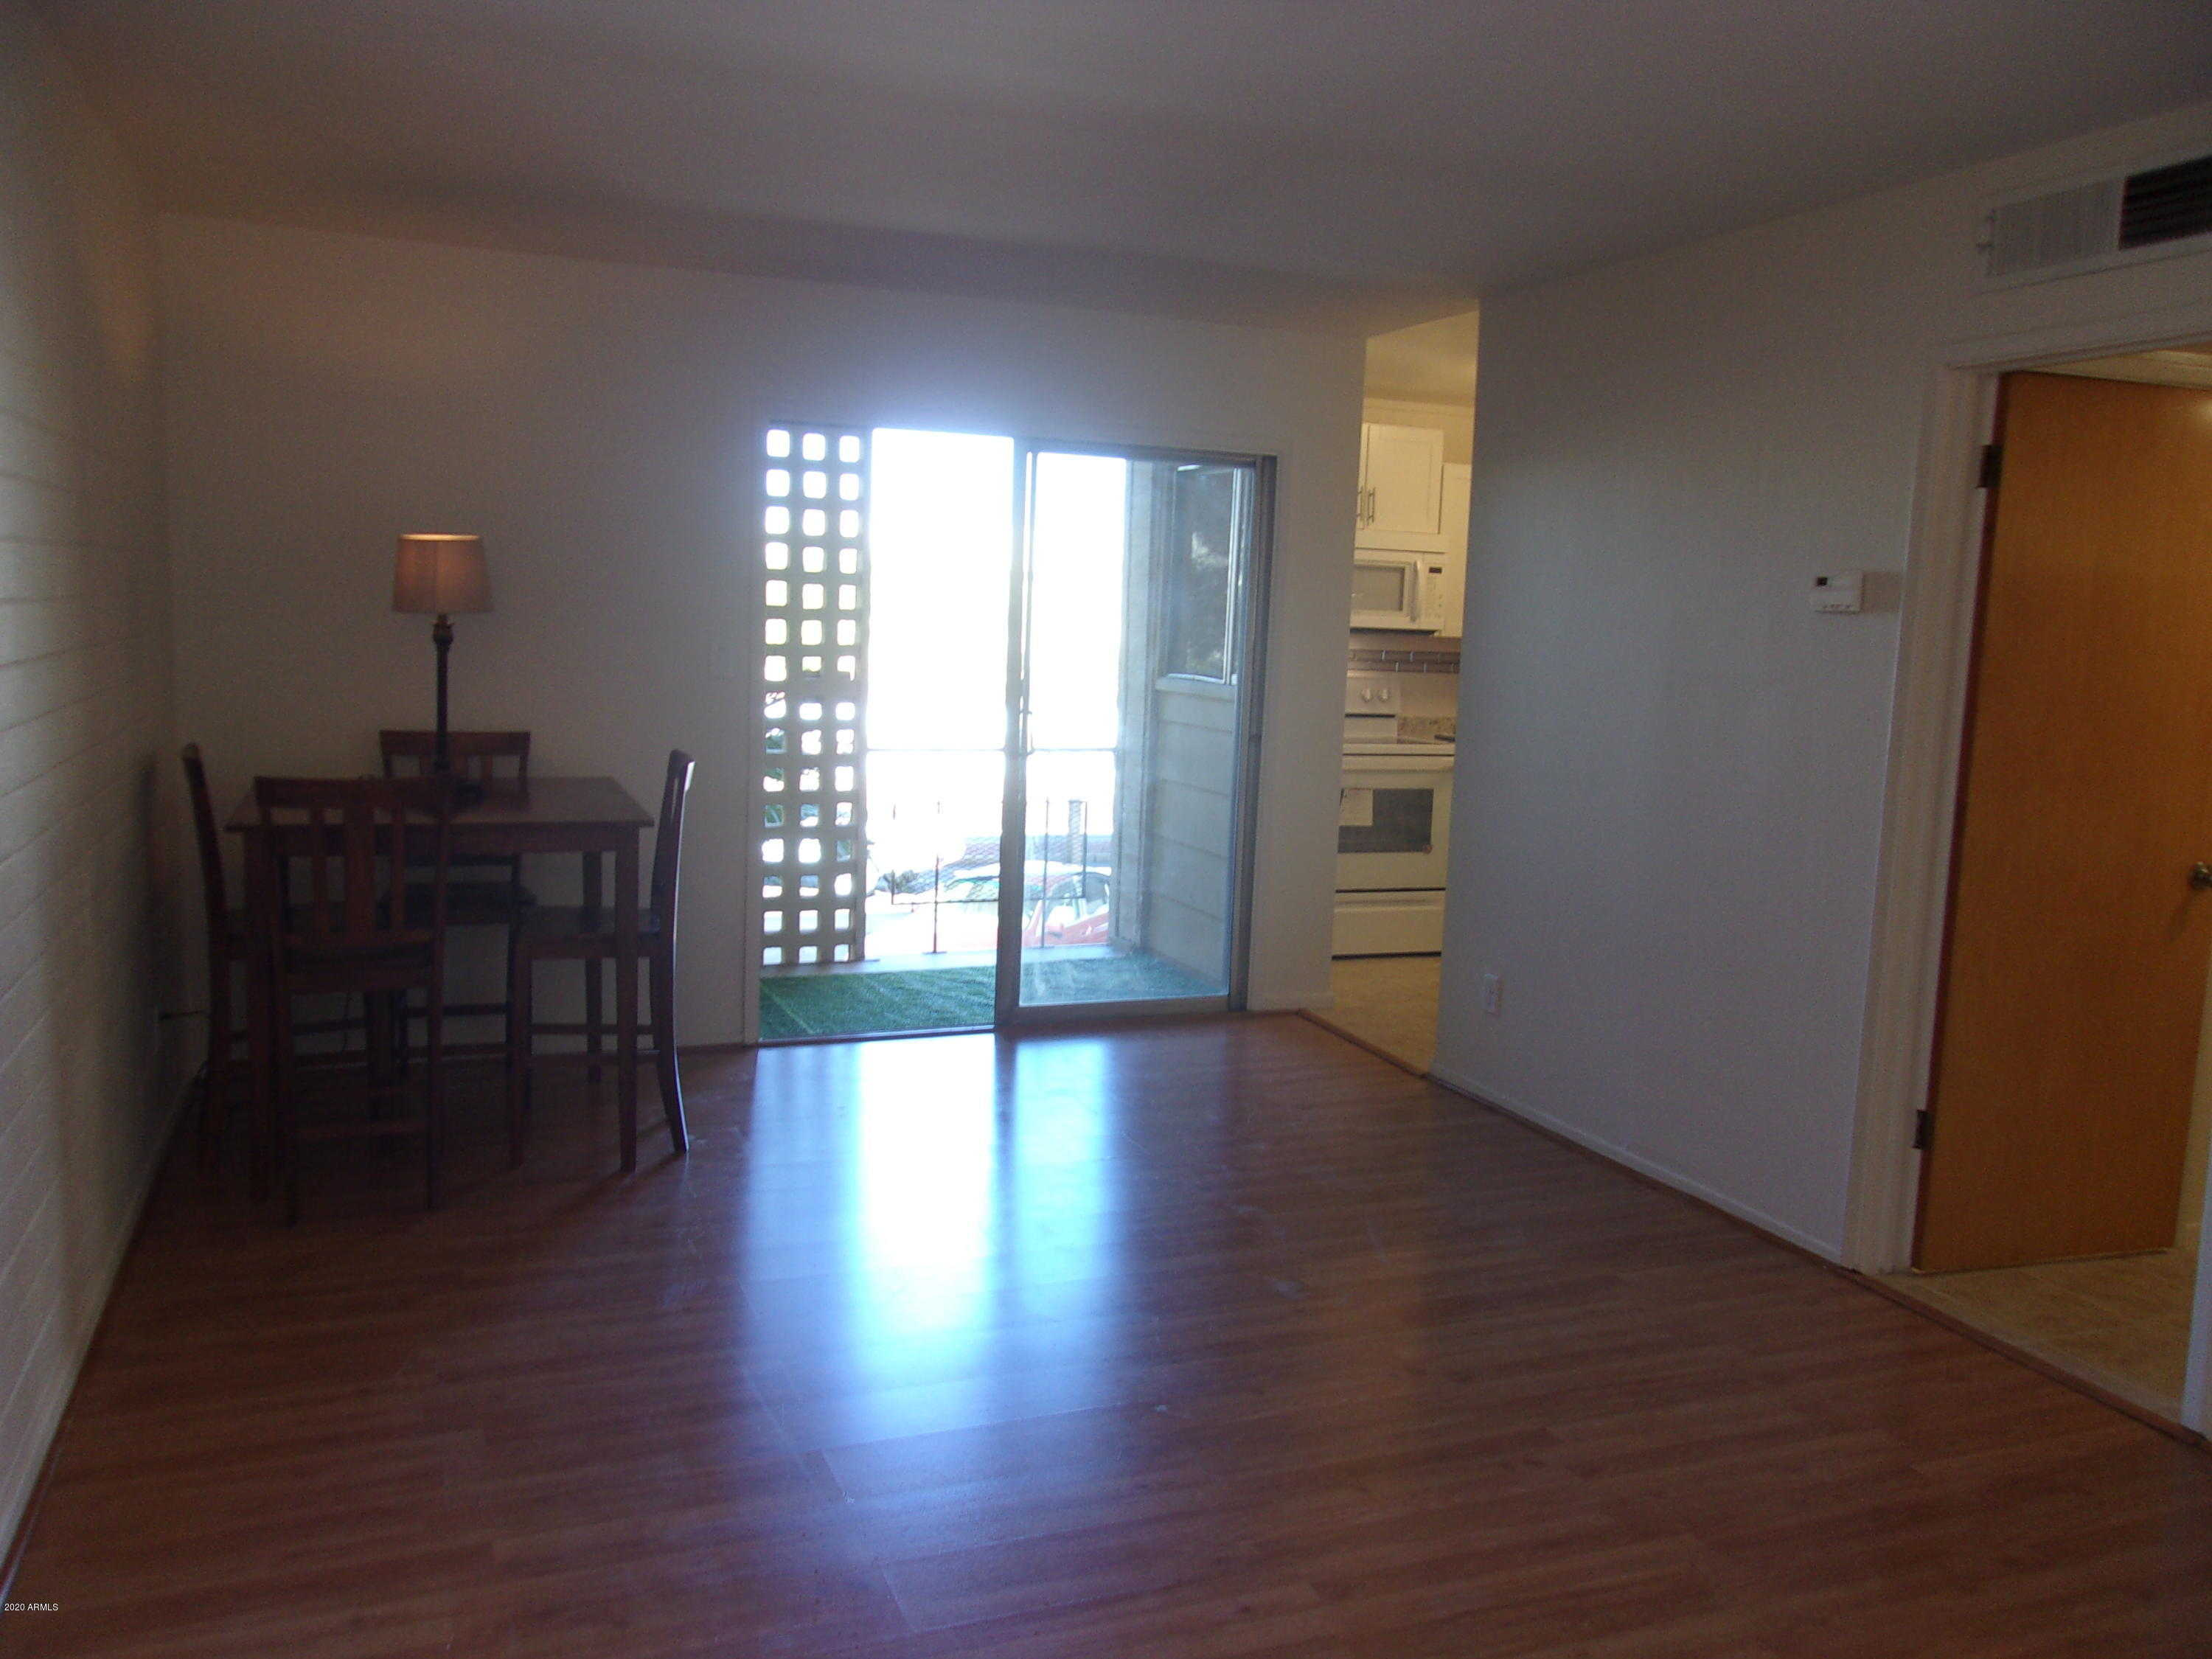 $63,900 - 0Br/1Ba -  for Sale in Consolidated Cooperatives Of Scottsdale East, Scottsdale